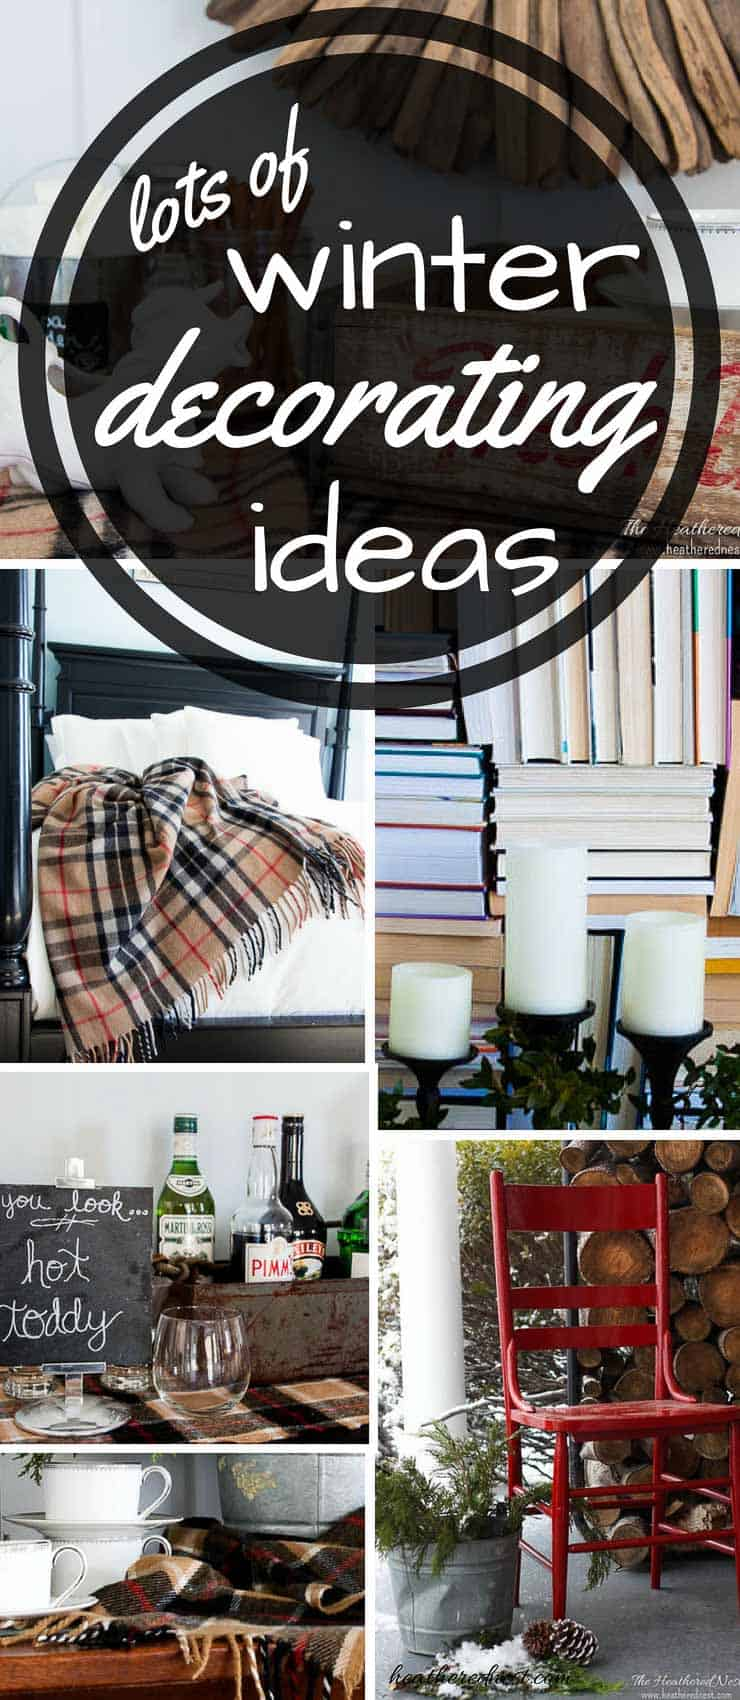 Great ideas to warm up winter decor! THESE ARE SO EASY & AFFORDABLE!! #winterdecoratingideas #winterdecor #winterhomedecor